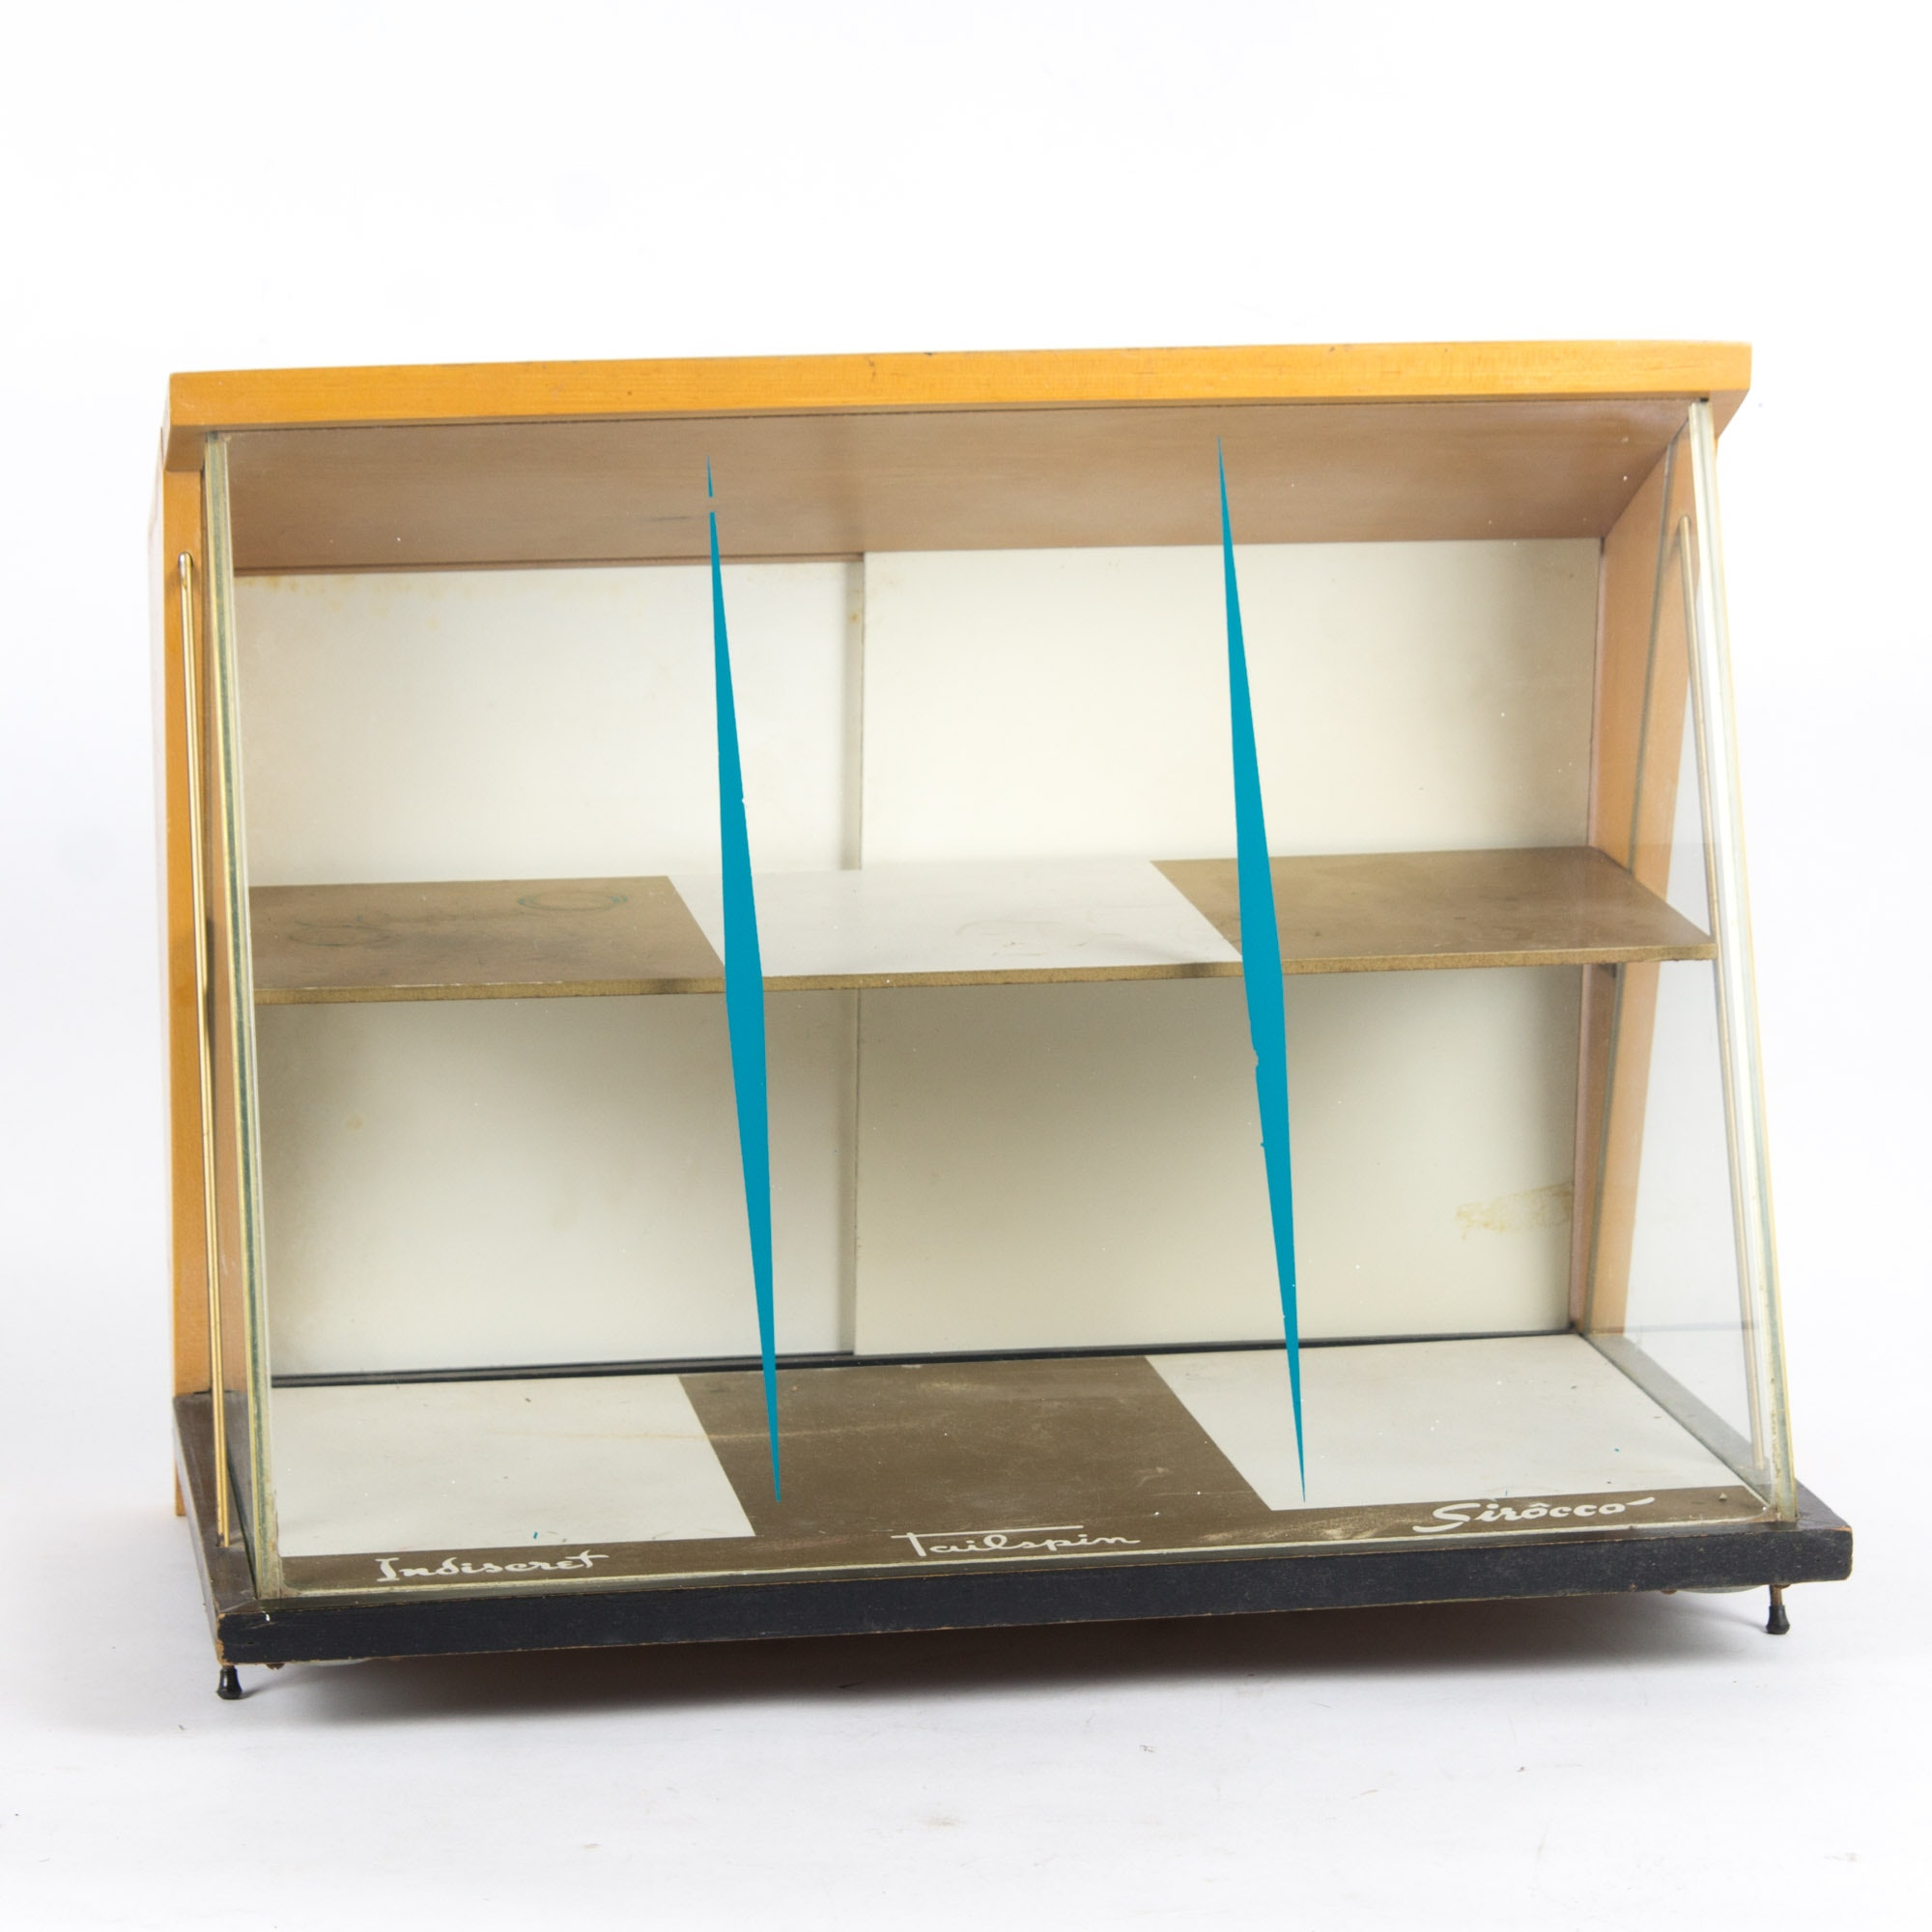 Vintage Wooden and Glass Tabletop Display Cabinet